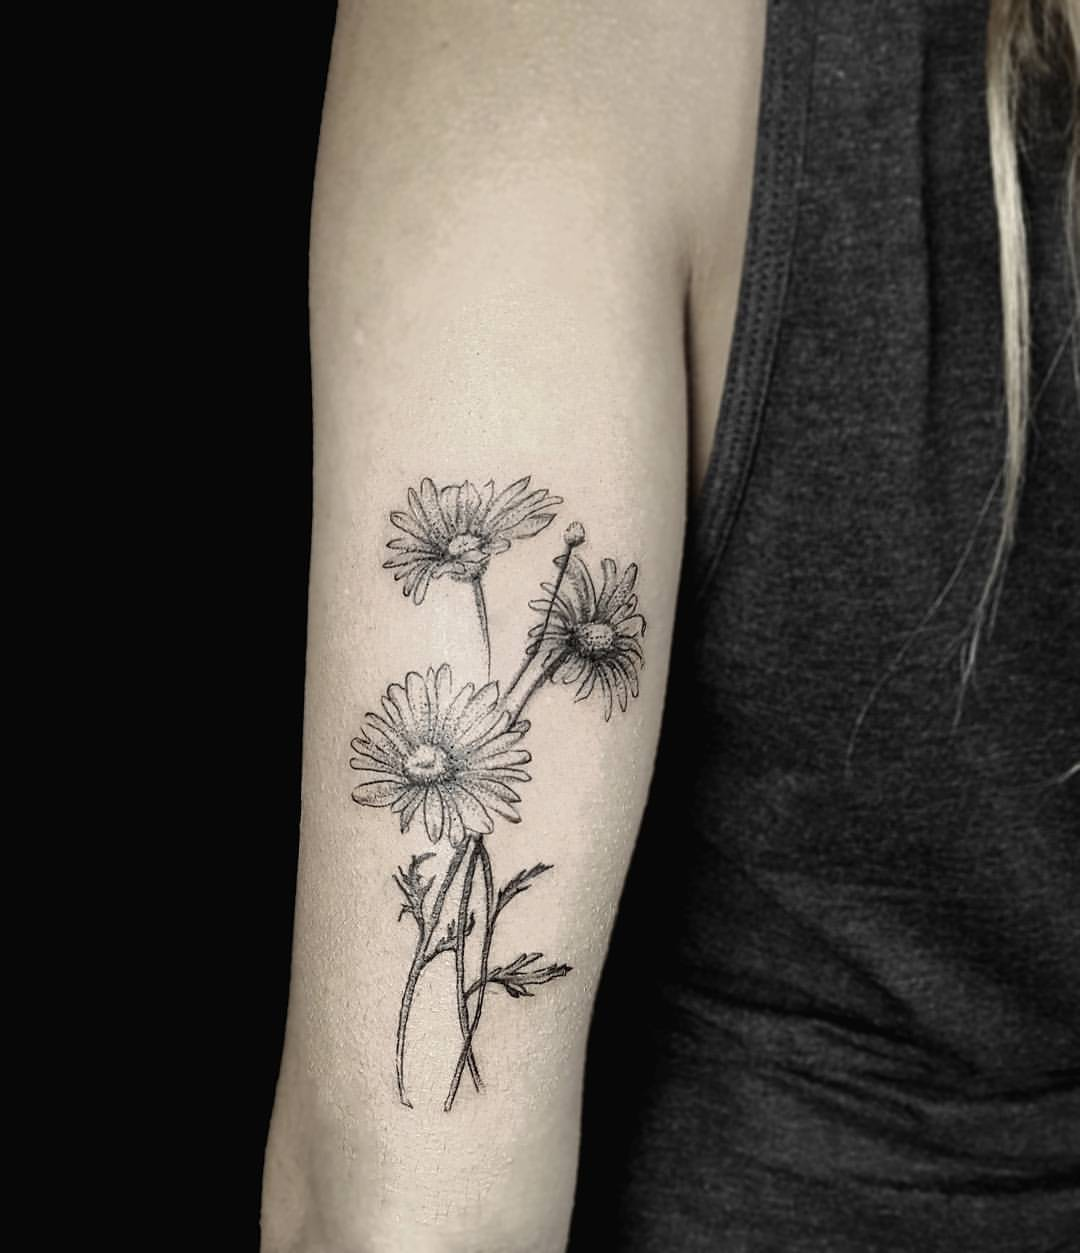 Daisies tattoo on the triceps